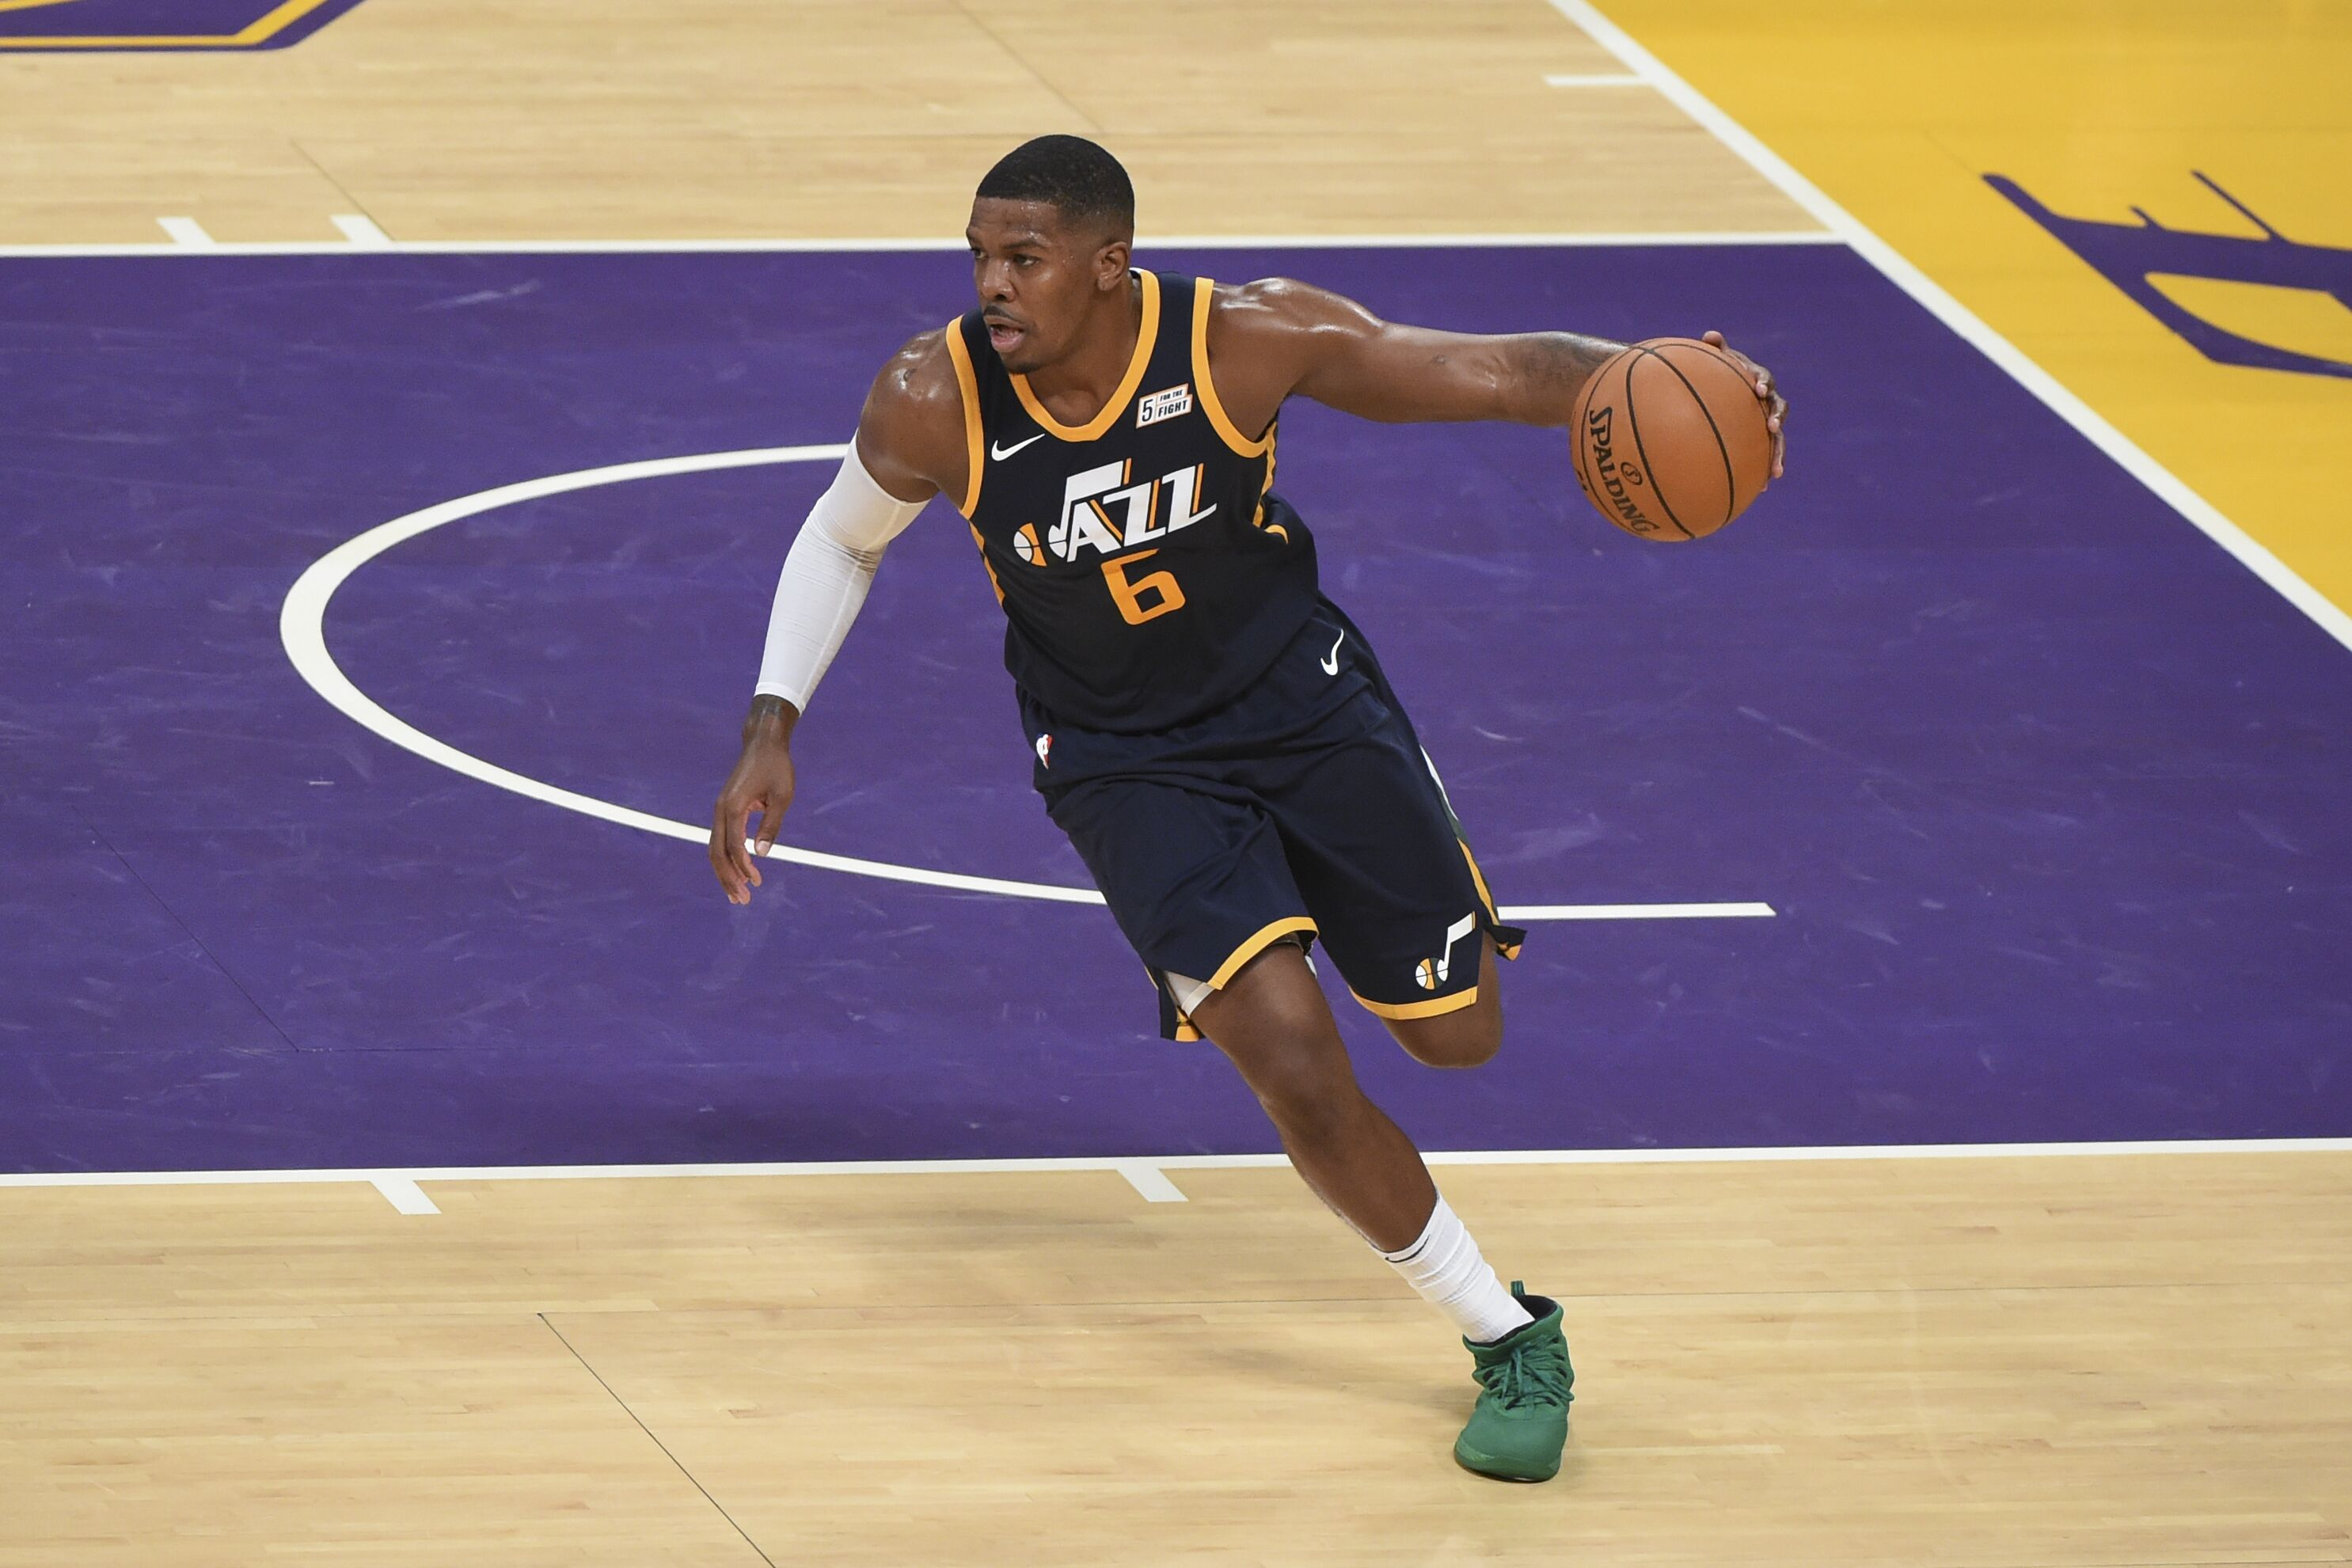 859993544-utah-jazz-v-los-angeles-lakers.jpg